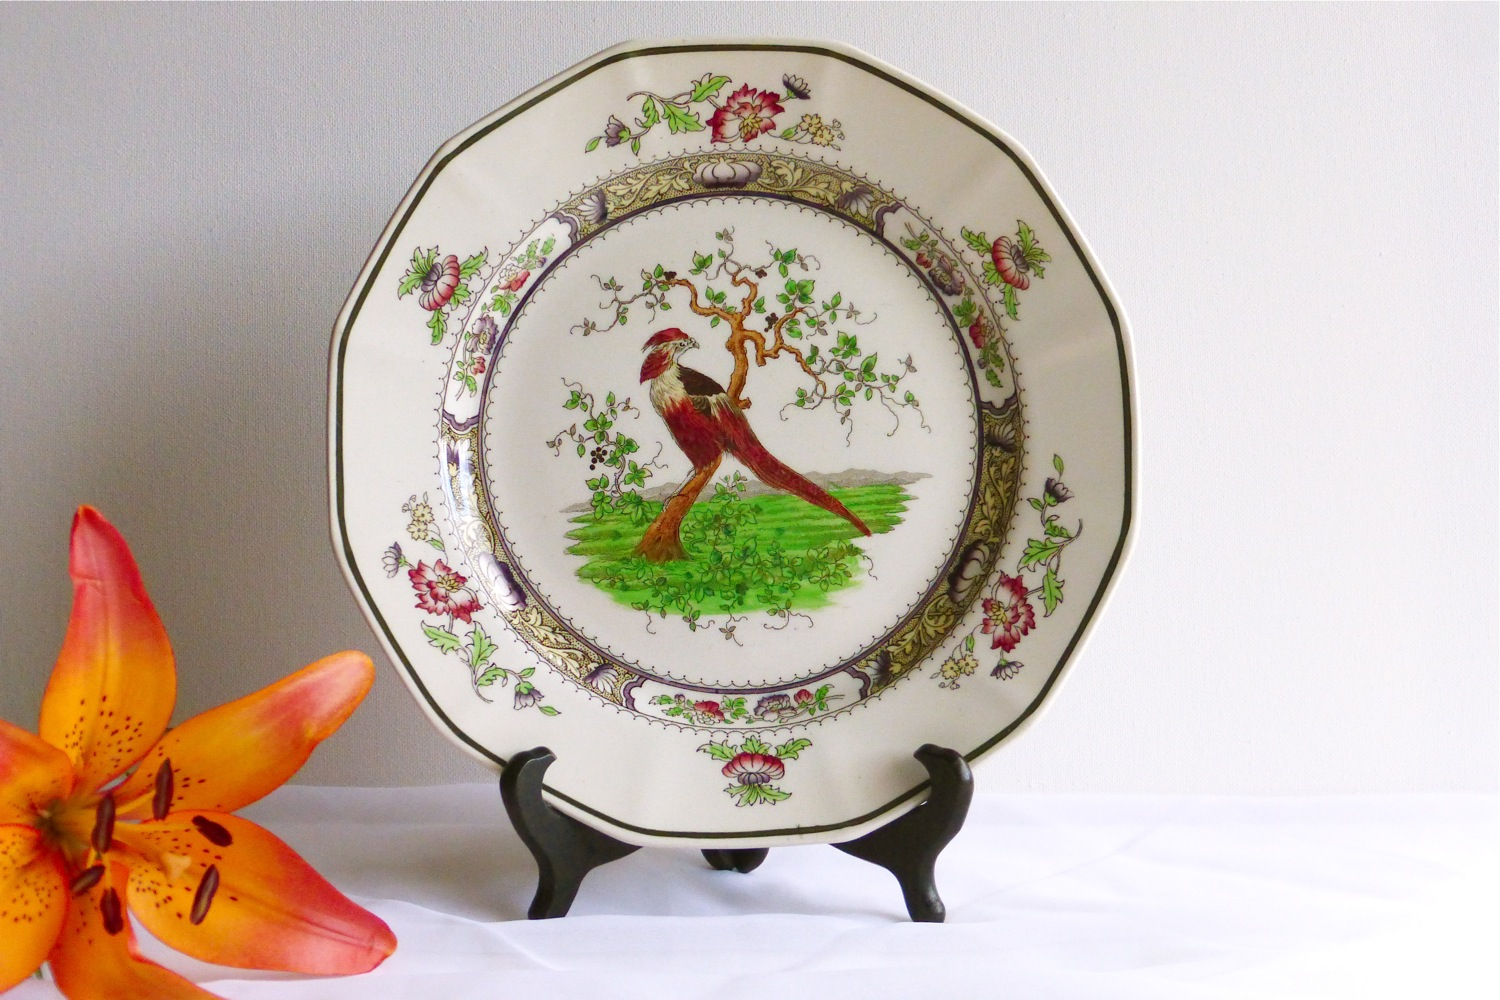 1900 Royal Doulton Pekin plate, 1900 Royal Doulton antique plate, 1900 Royal Doulton Chinoiserie Revival antique dish ware, 1900 Royal Doulton antique bird plate, antique bird plate, vintage bird plate